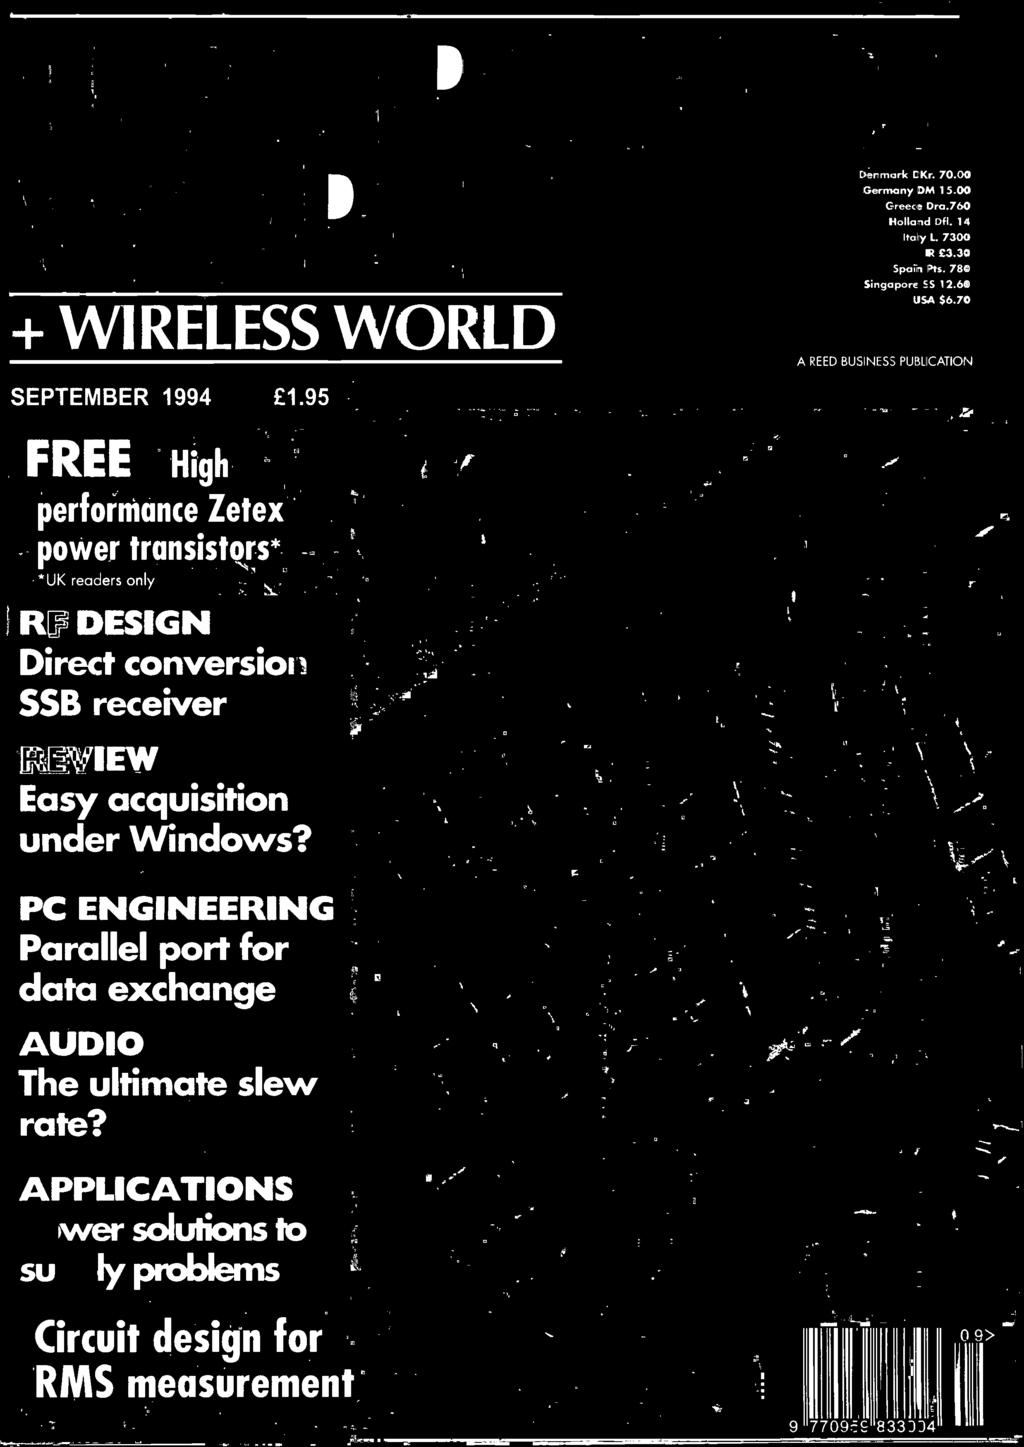 World Wirfi Fcc Pdf Lm123cellphonechargercircuitpng Conversion Ssb Receiver Review Easy Acquisition Under Windows